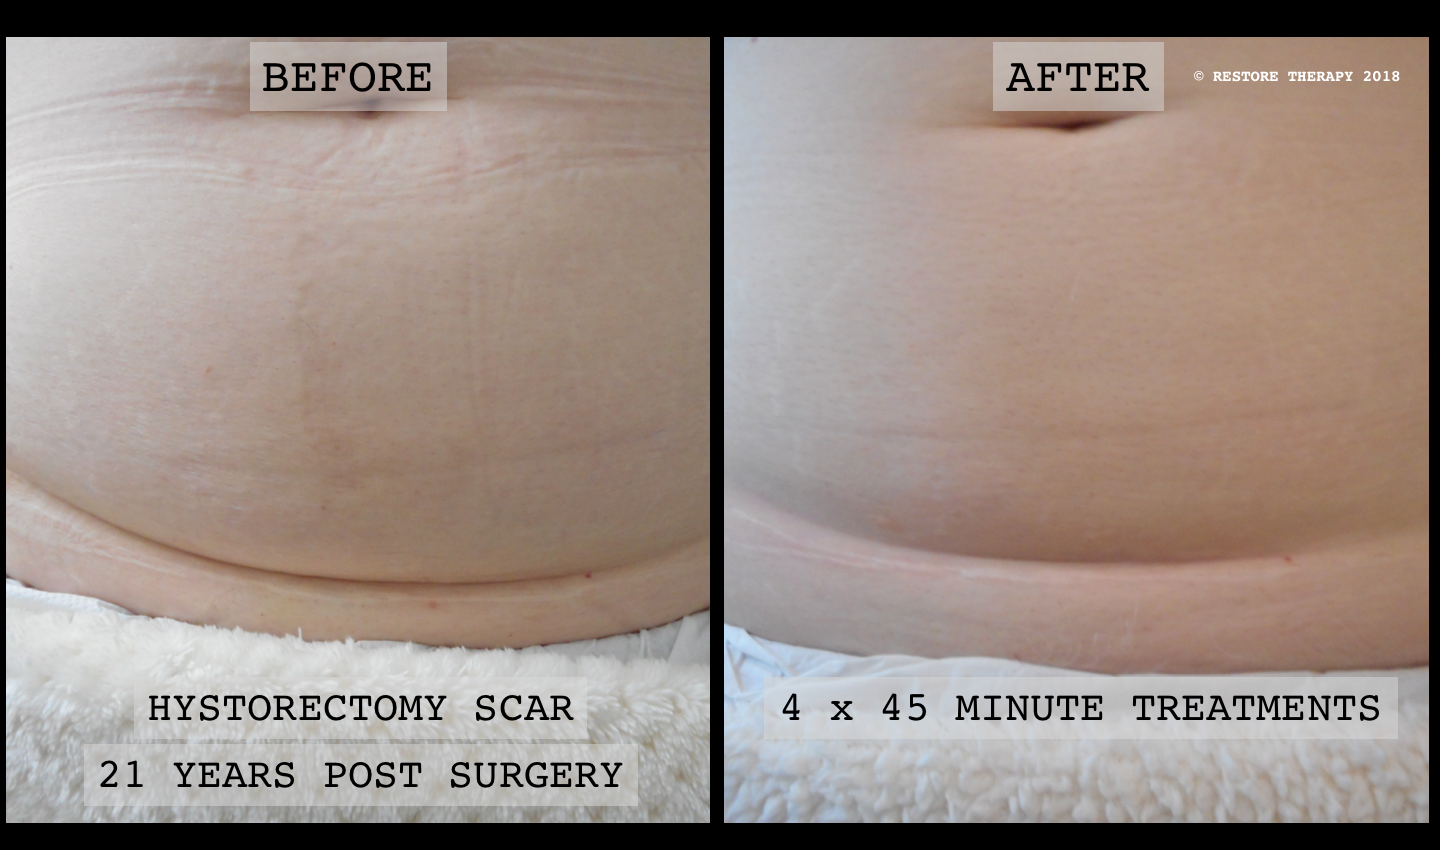 BEFORE AND AFTER HYSTERECTOMY SCAR TREATMENT